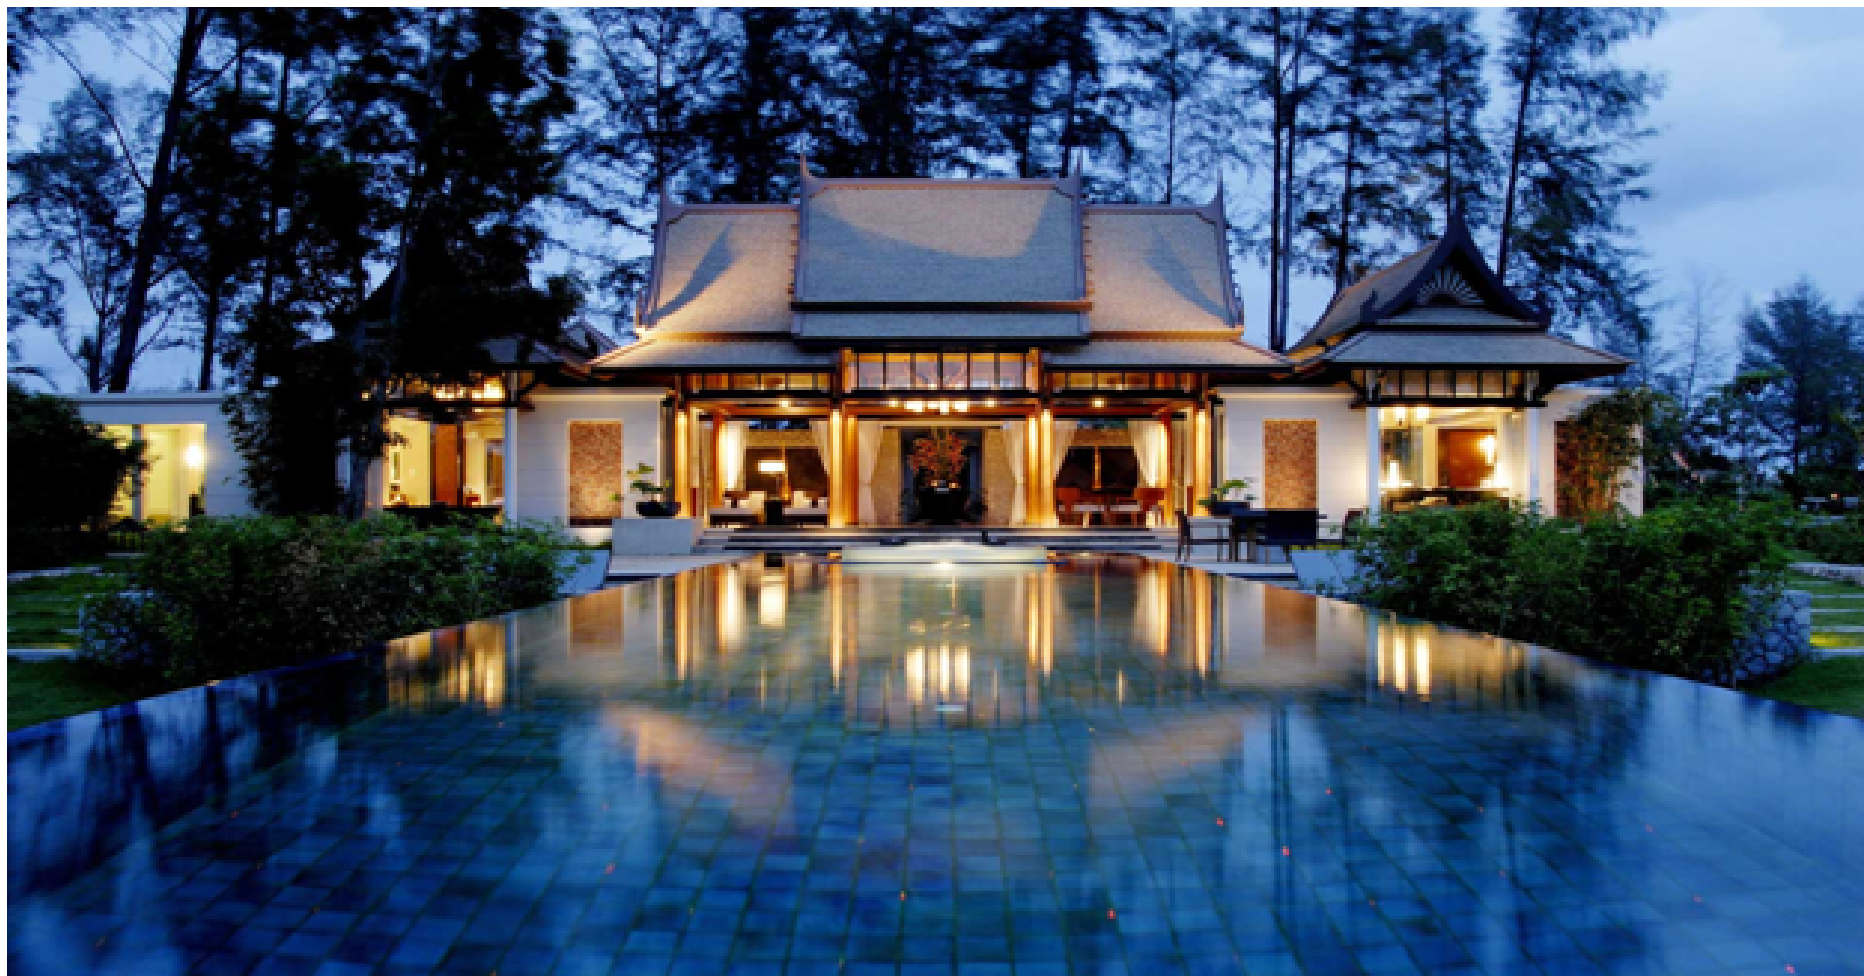 The top 6 luxury hotels in thailand for a luxurious stay for Luxury hotel stays